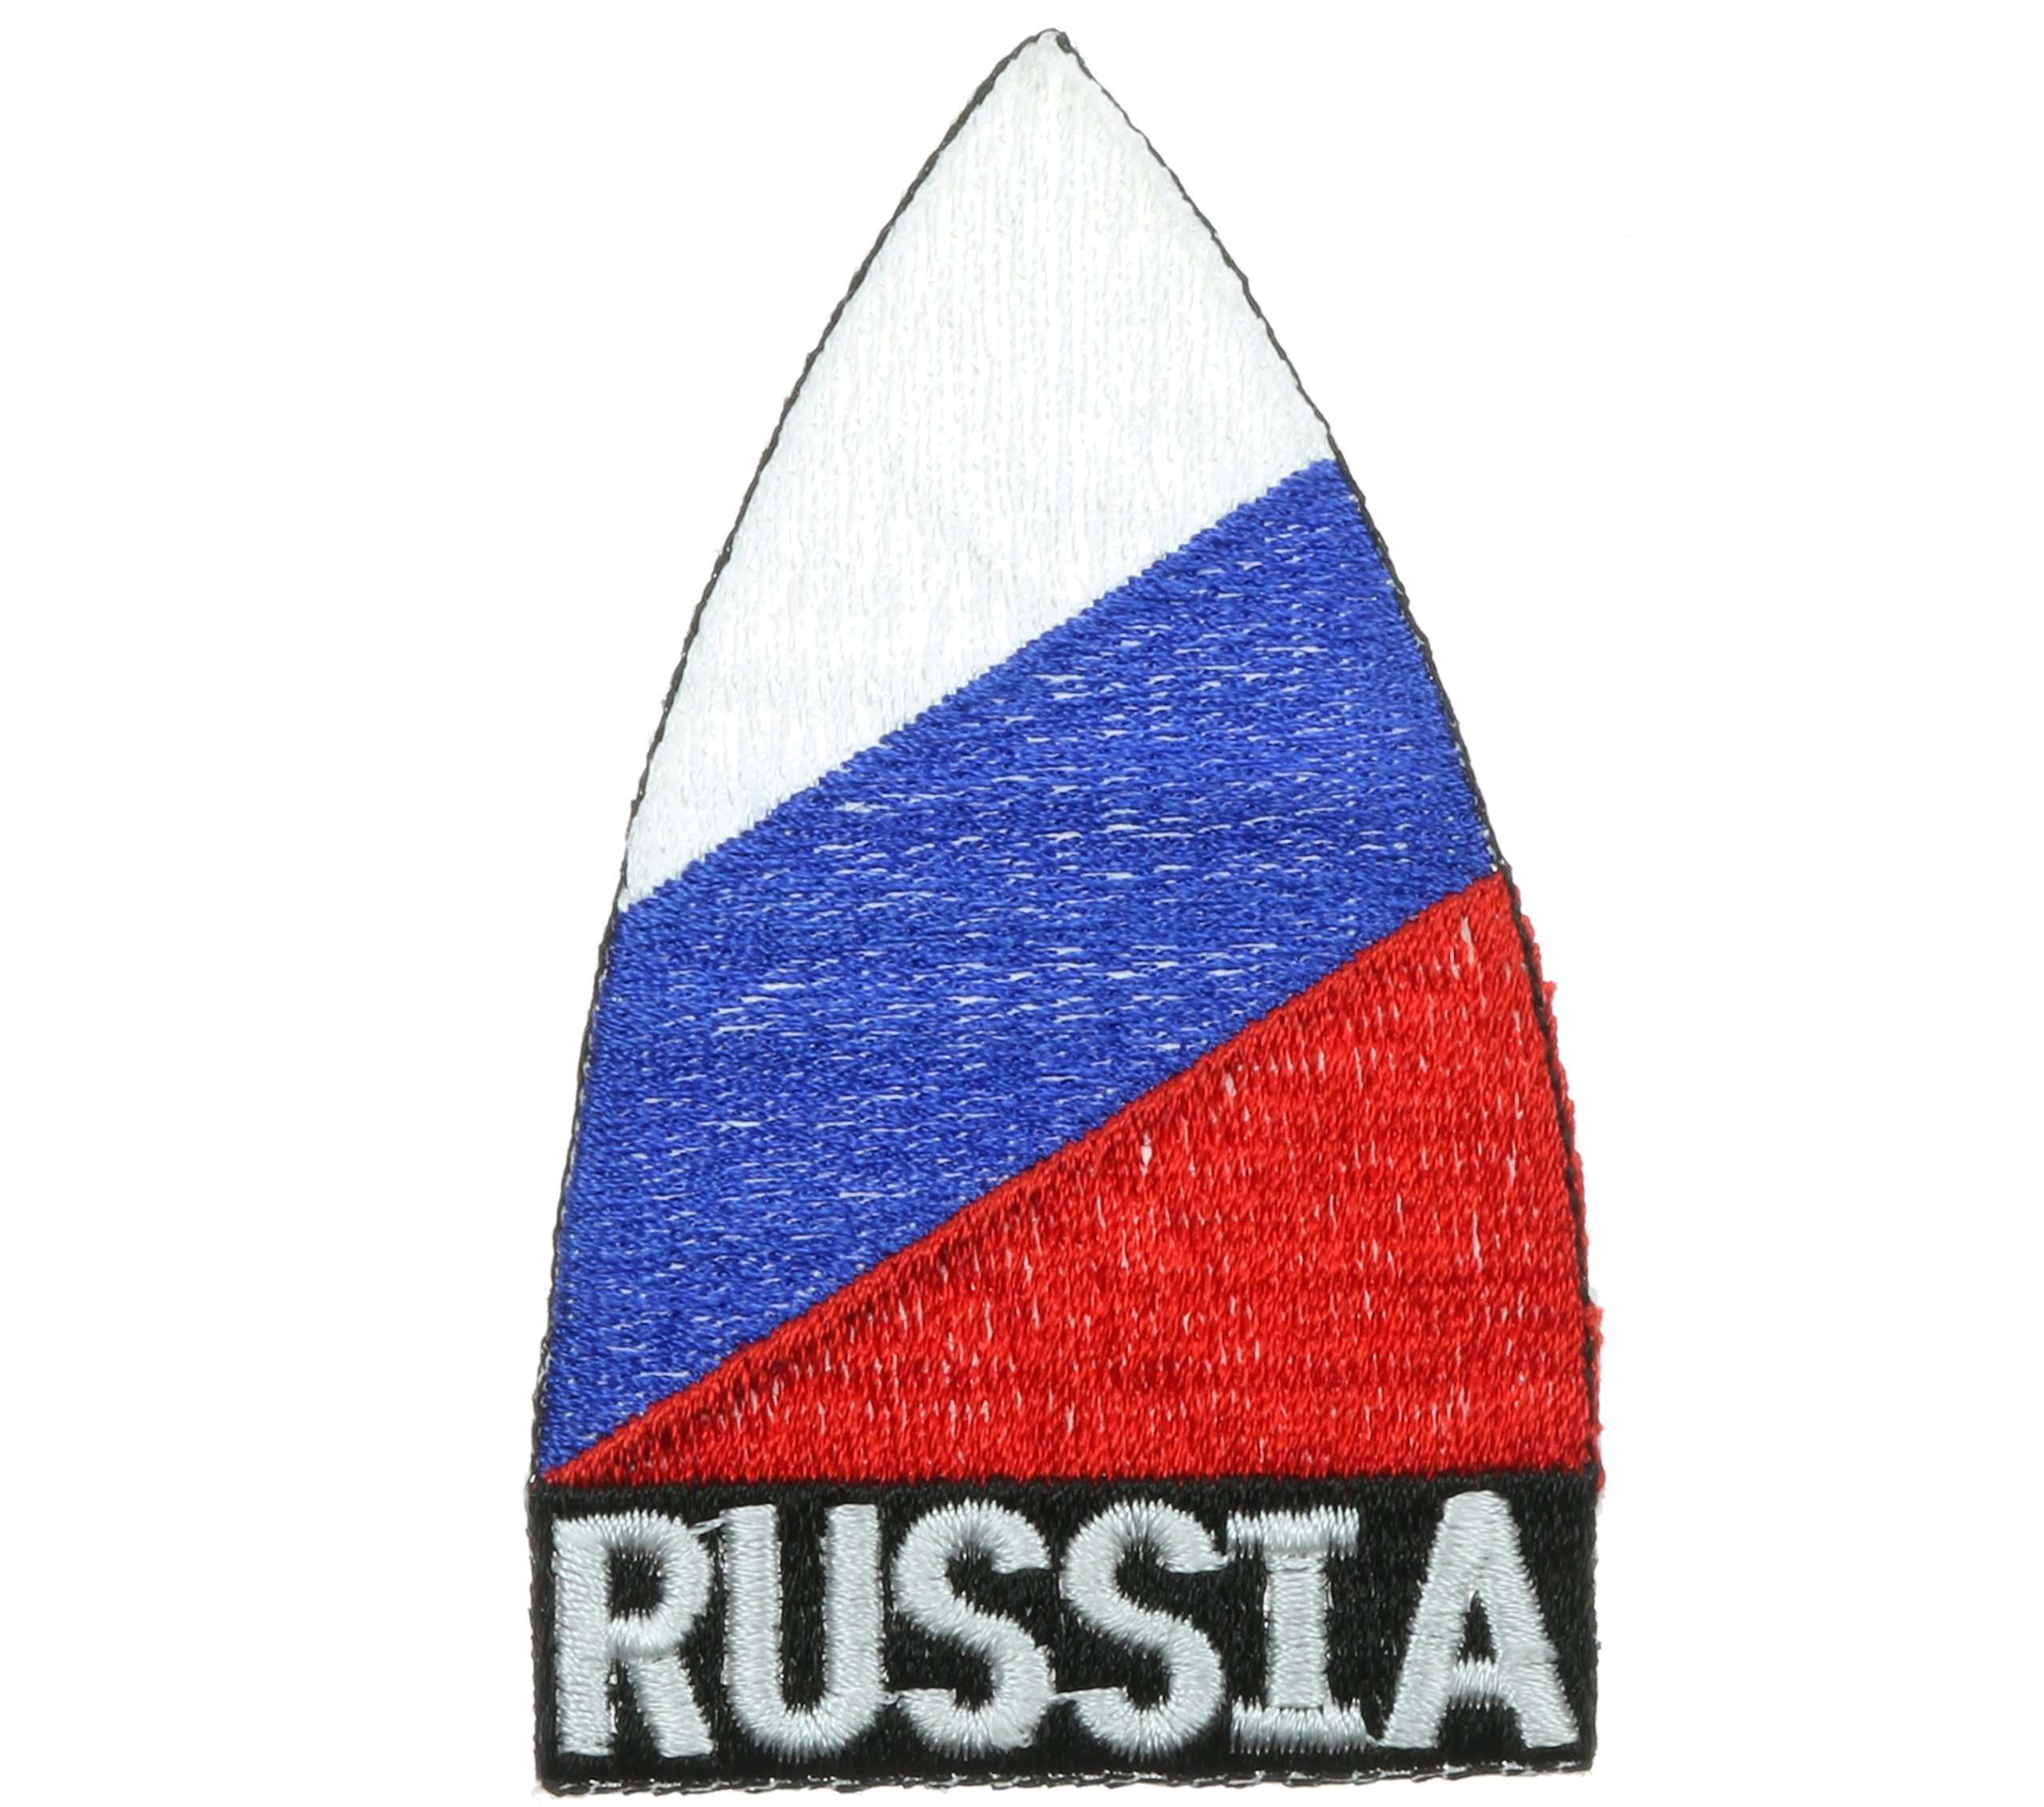 Russia Cone Flag 3.25 inch hat cap shirt patch PPM1243 by Sujak Military Items